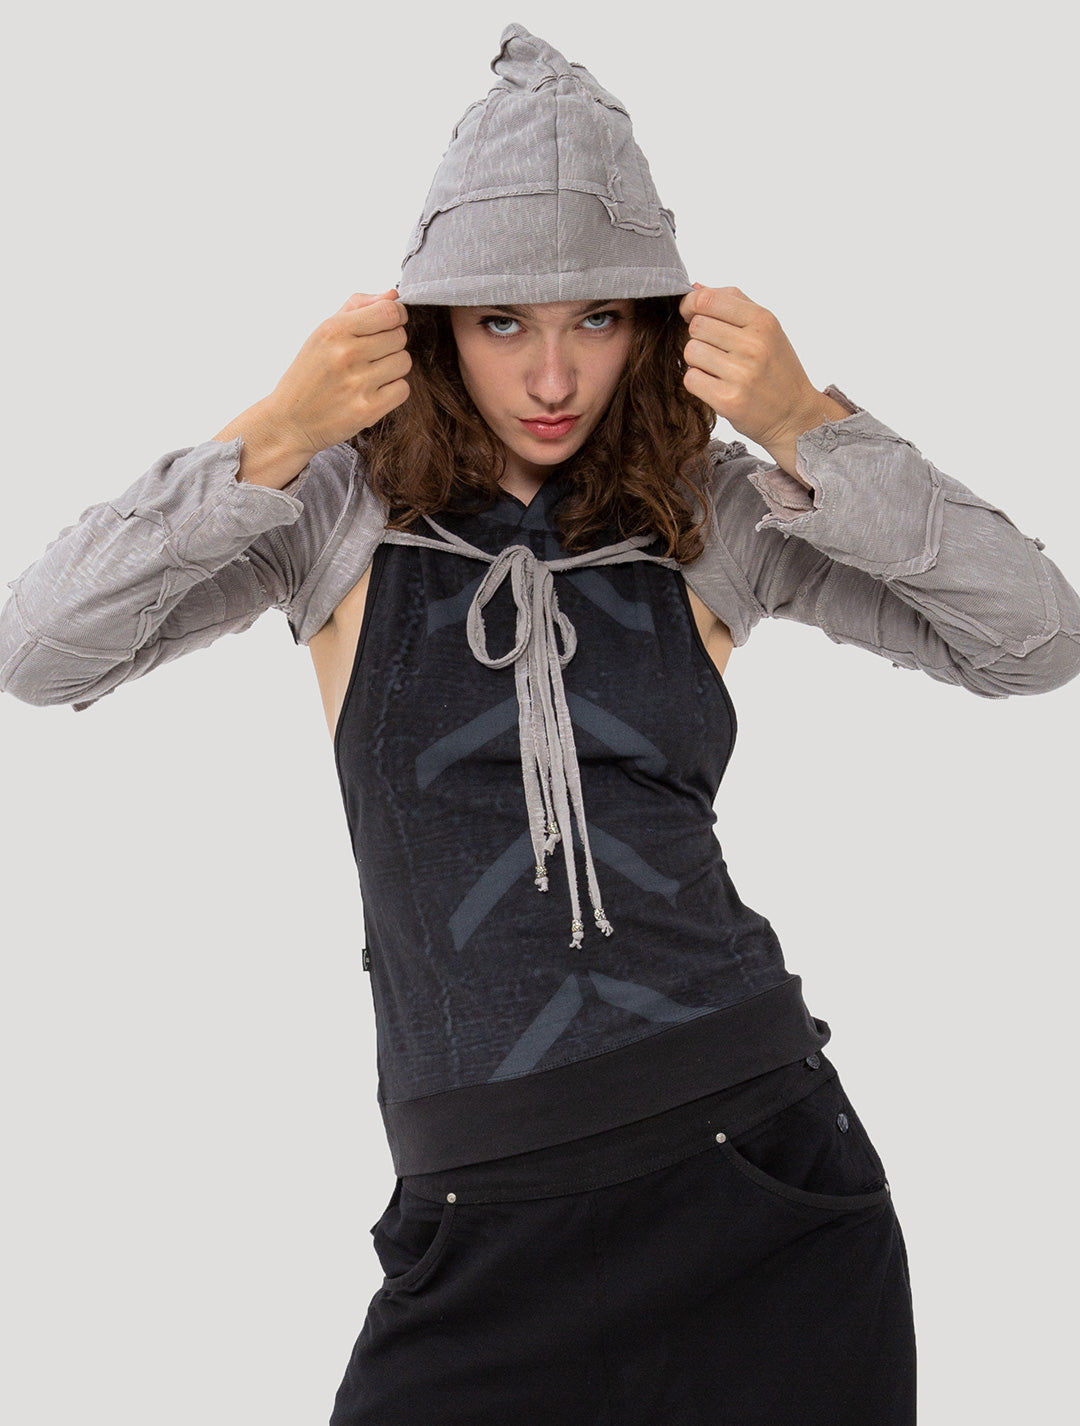 Pecoa Sleeves Rmx Hooded Shrug